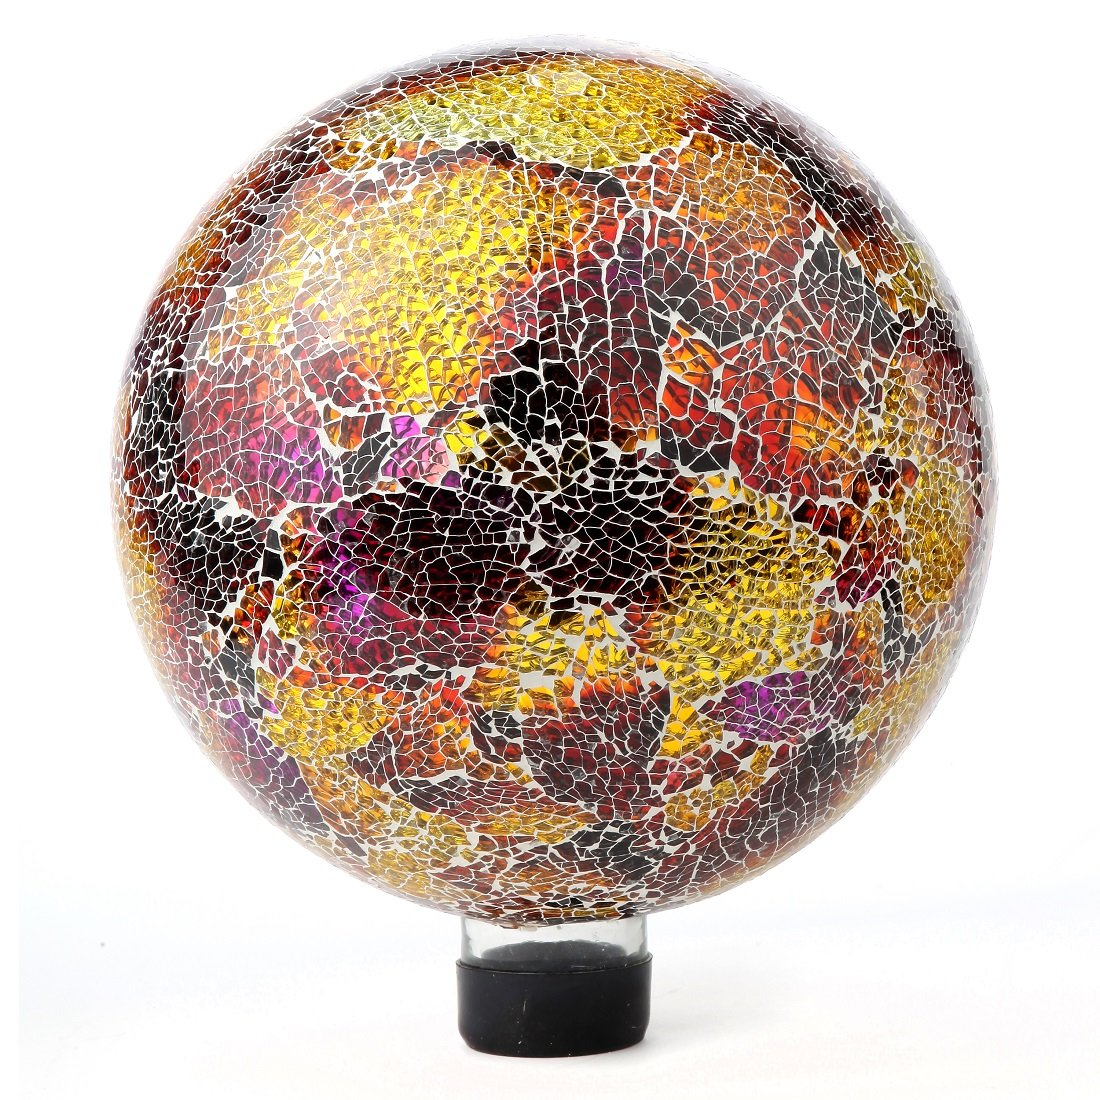 Lily's Home Colorful Mosaic Glass Gazing Ball, Designed with a Stunning Holographic Crackle Mosaic Pattern to Bring Color and Reflection to Any Home and Garden, Purple and Gold (10'' Diameter)